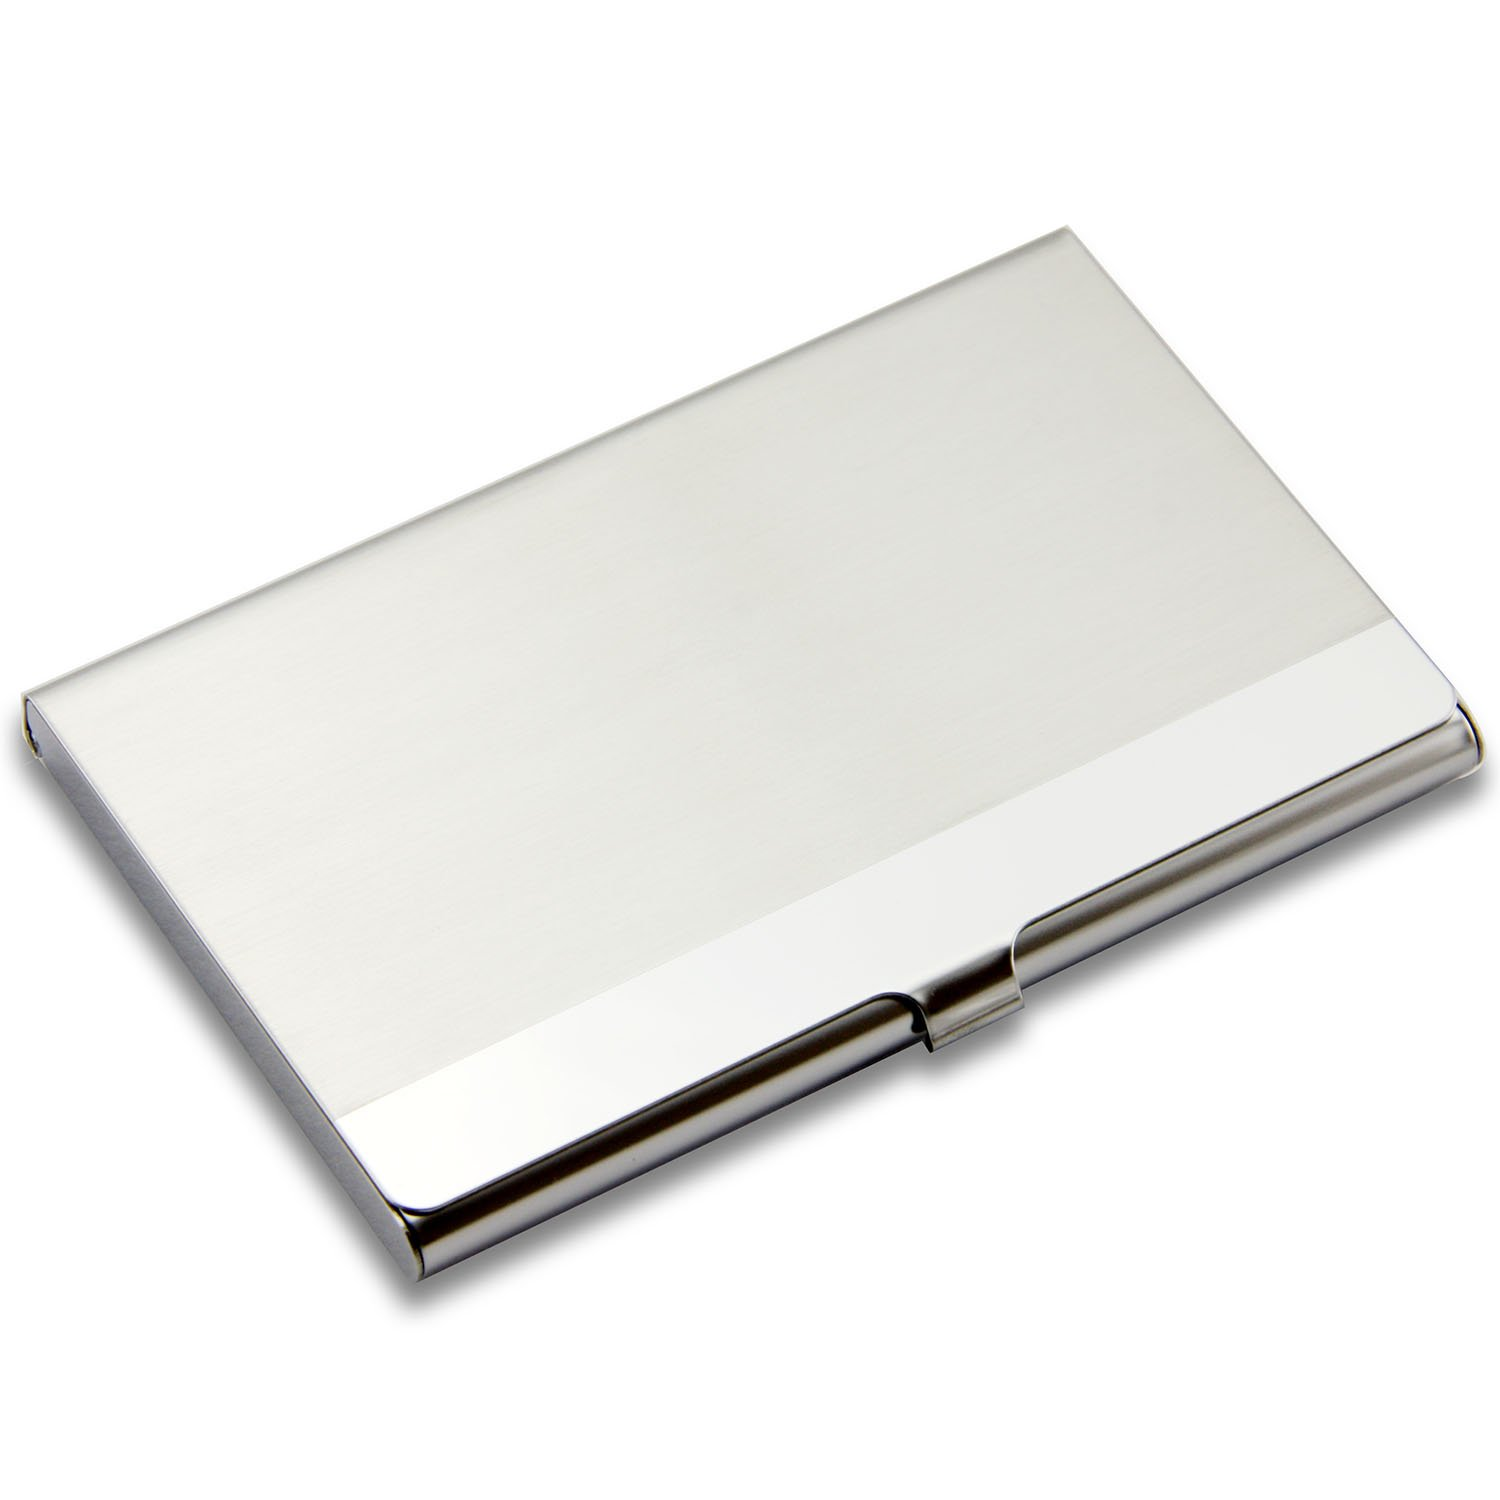 Amazon partstocktm business card holder stainless steel amazon partstocktm business card holder stainless steel business card case for men women keep business cards in immaculate condition magicingreecefo Image collections